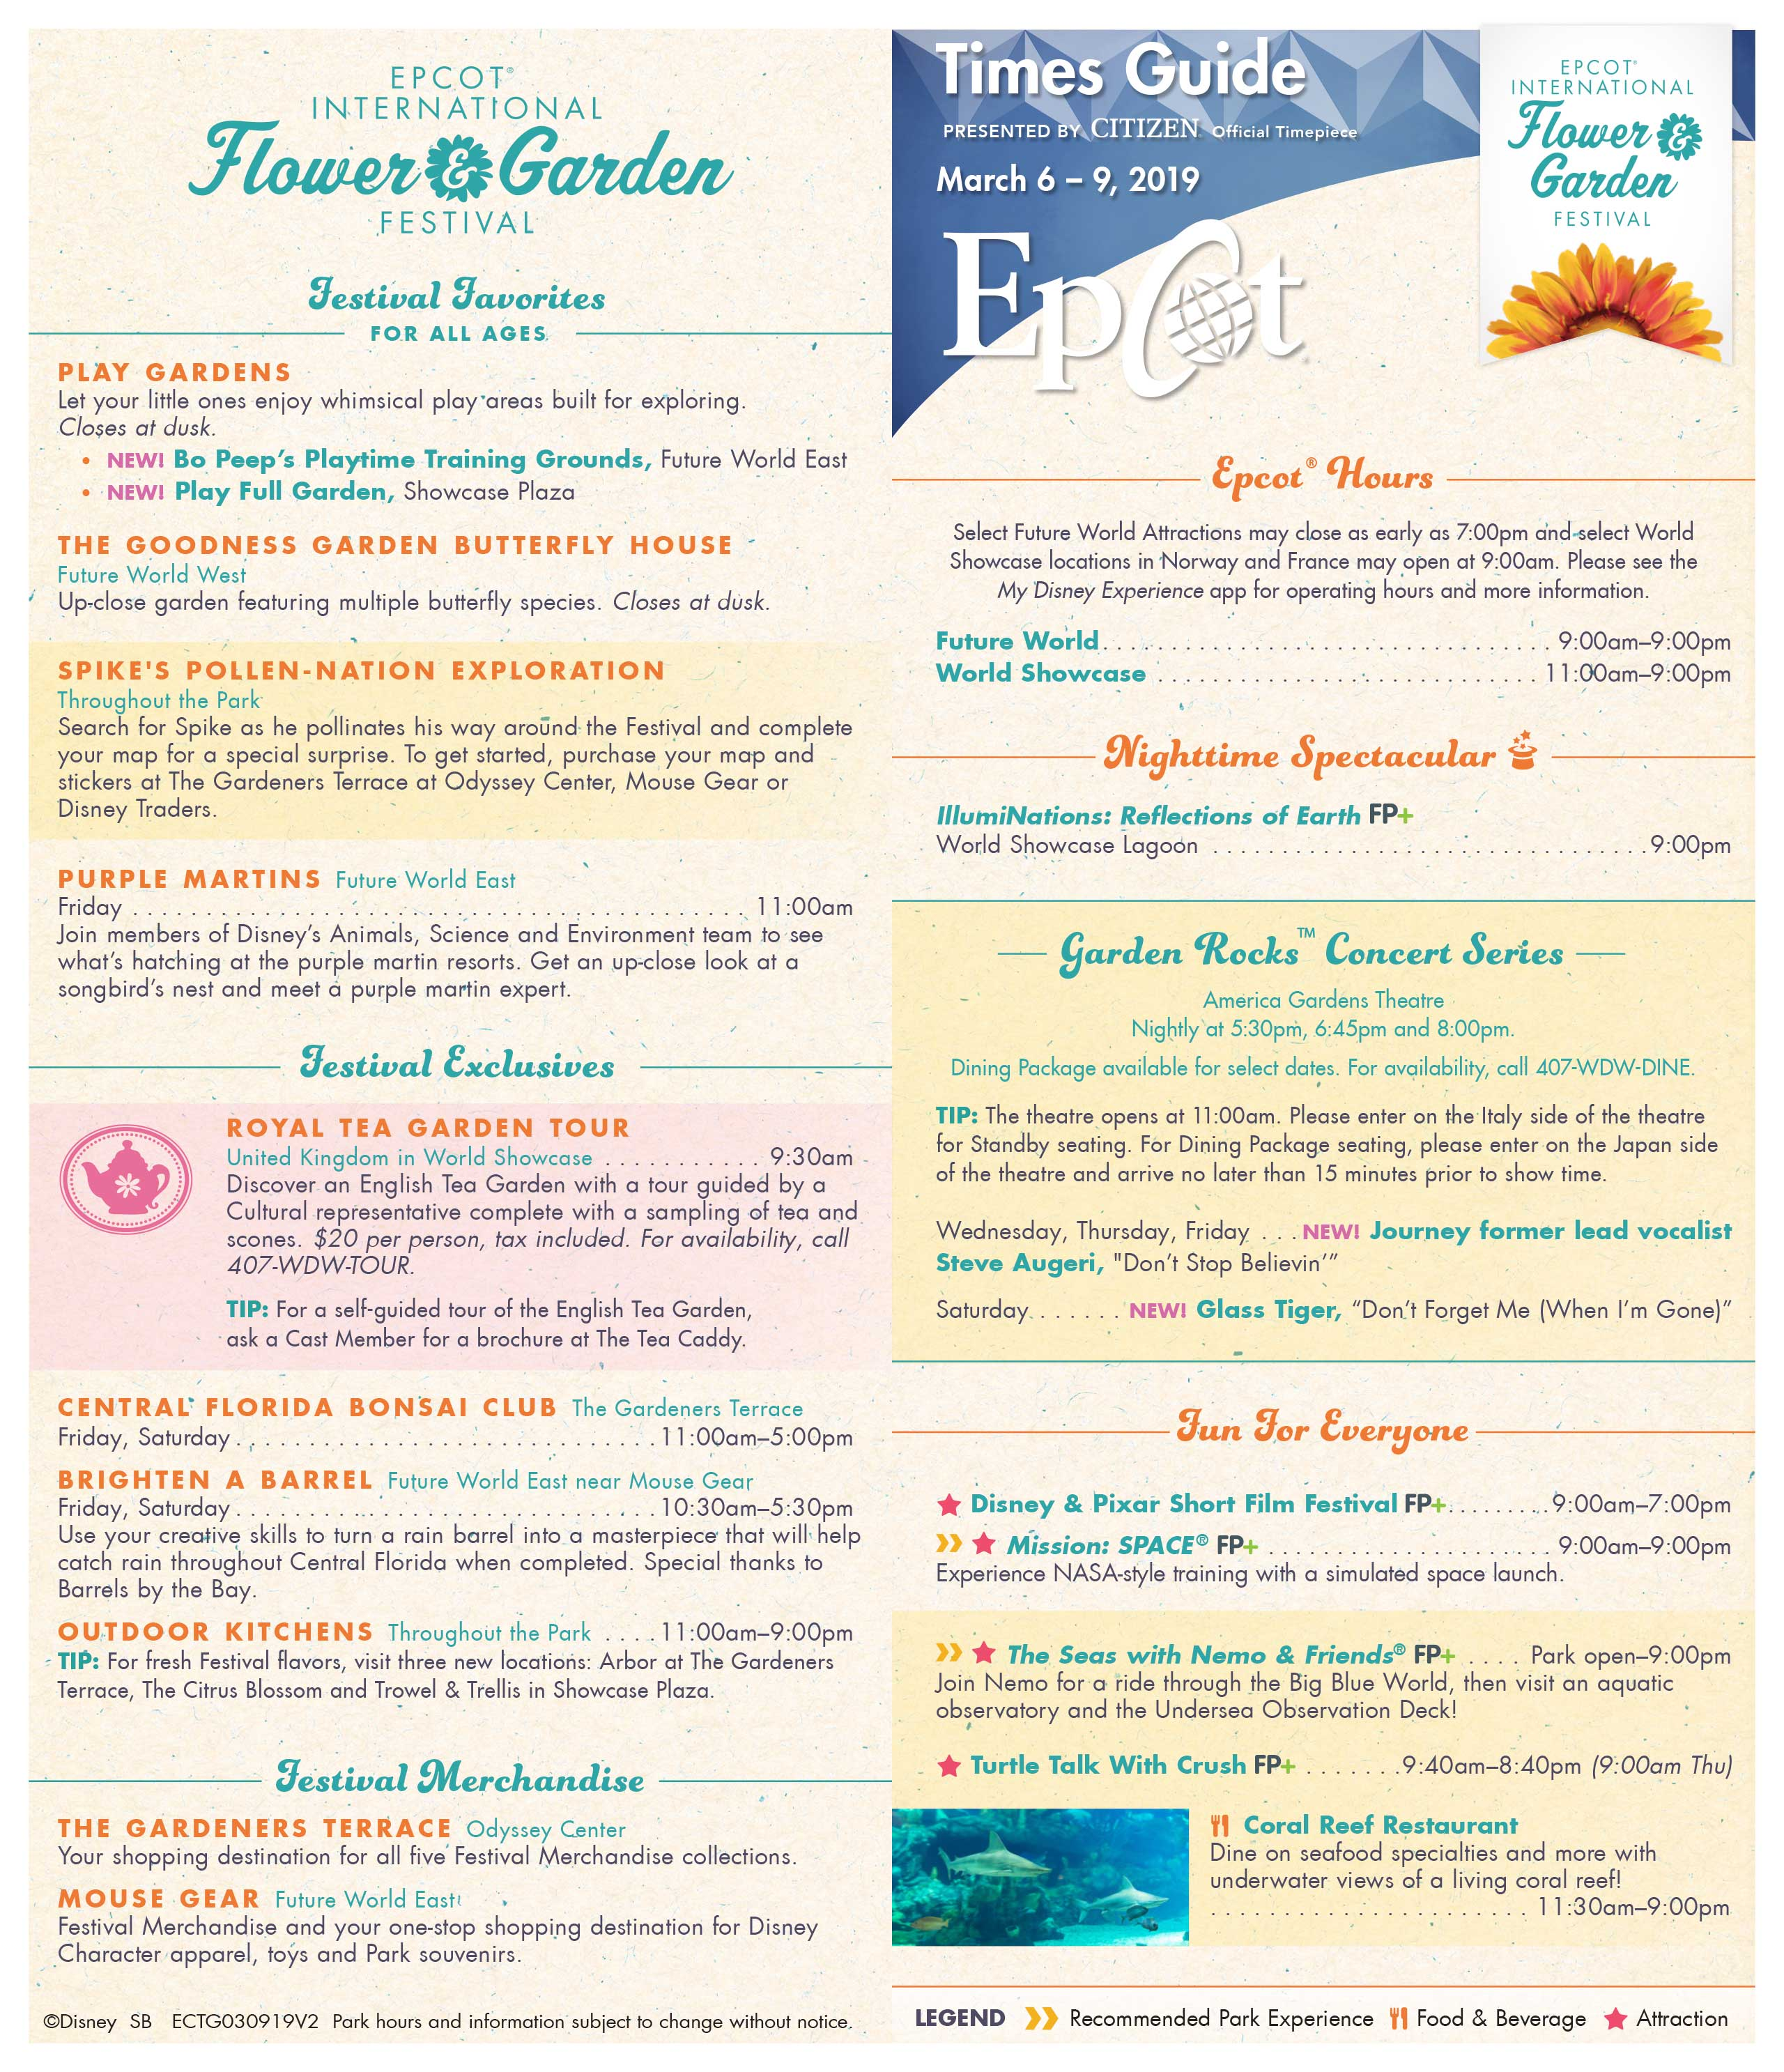 Epcot International Flower and Garden Festival Times Guide March 2019